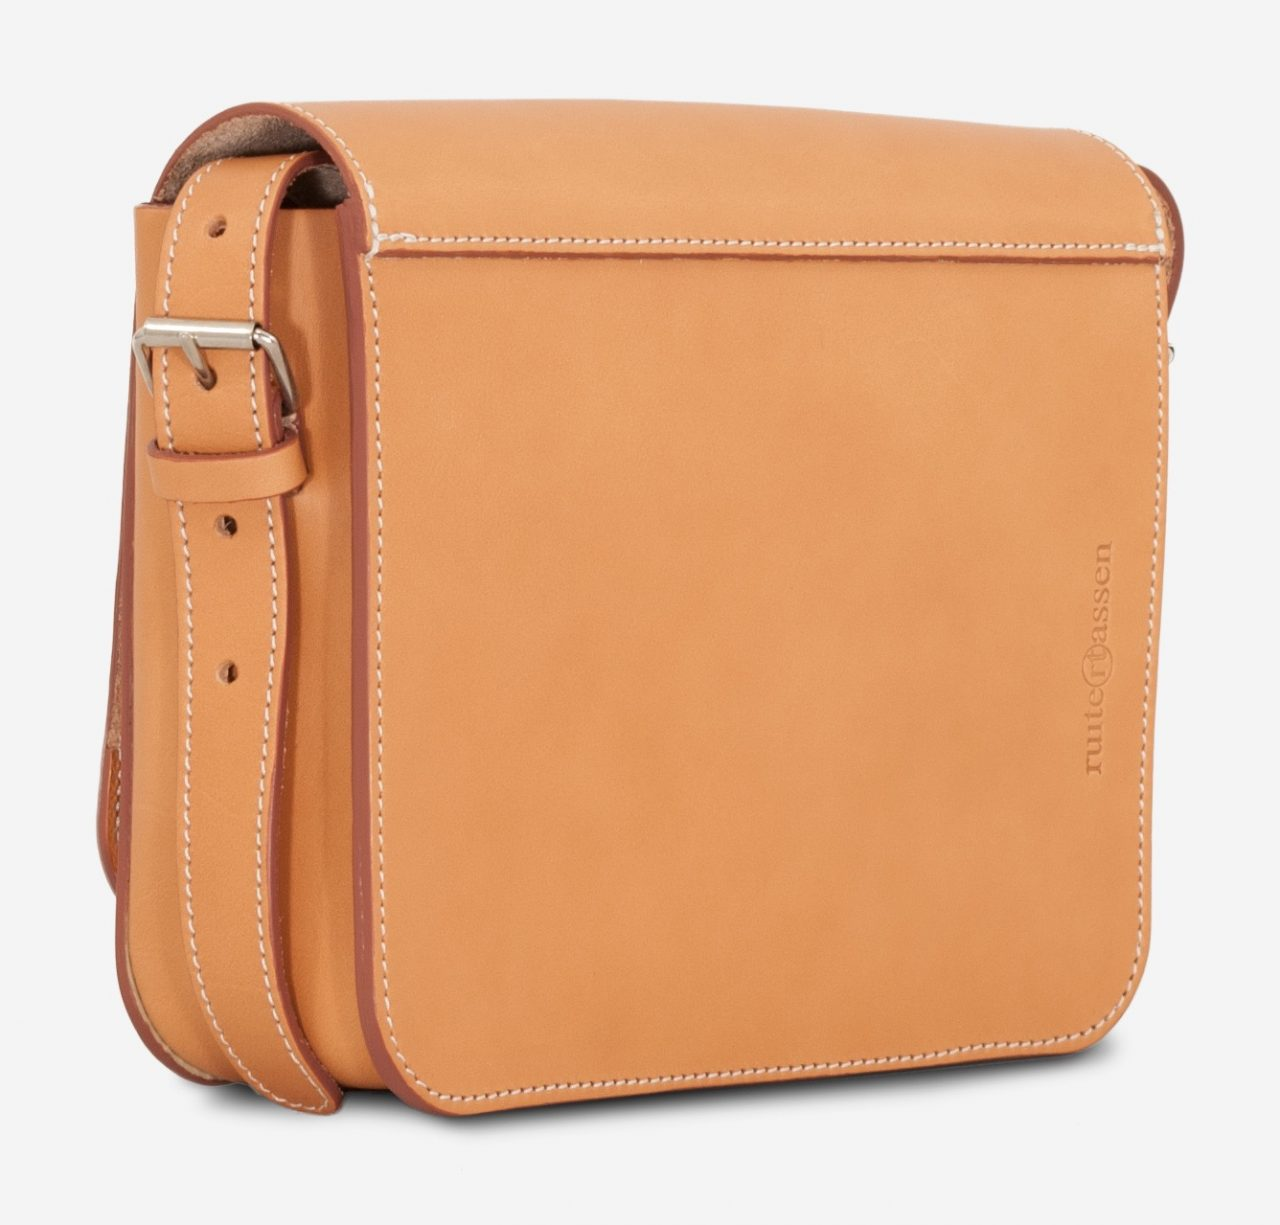 Back of the small vegetable tanned leather crossbody bag for women.